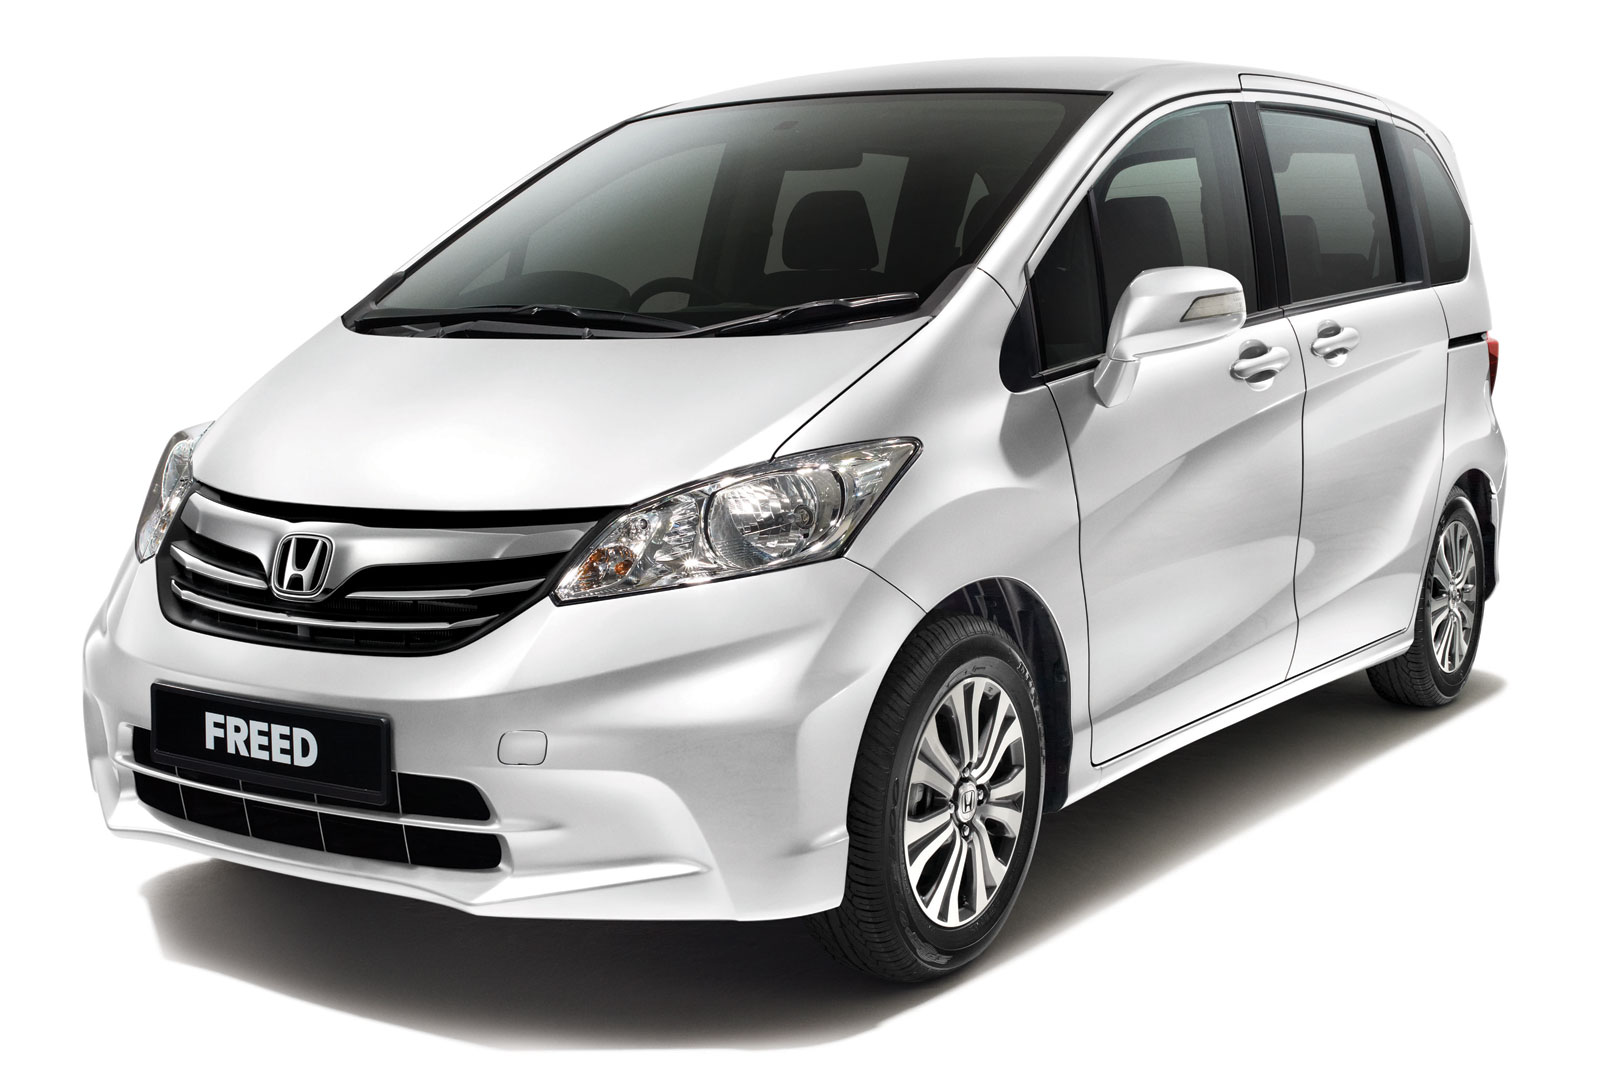 Honda Freed MPV facelifted  RM99800 to RM113500